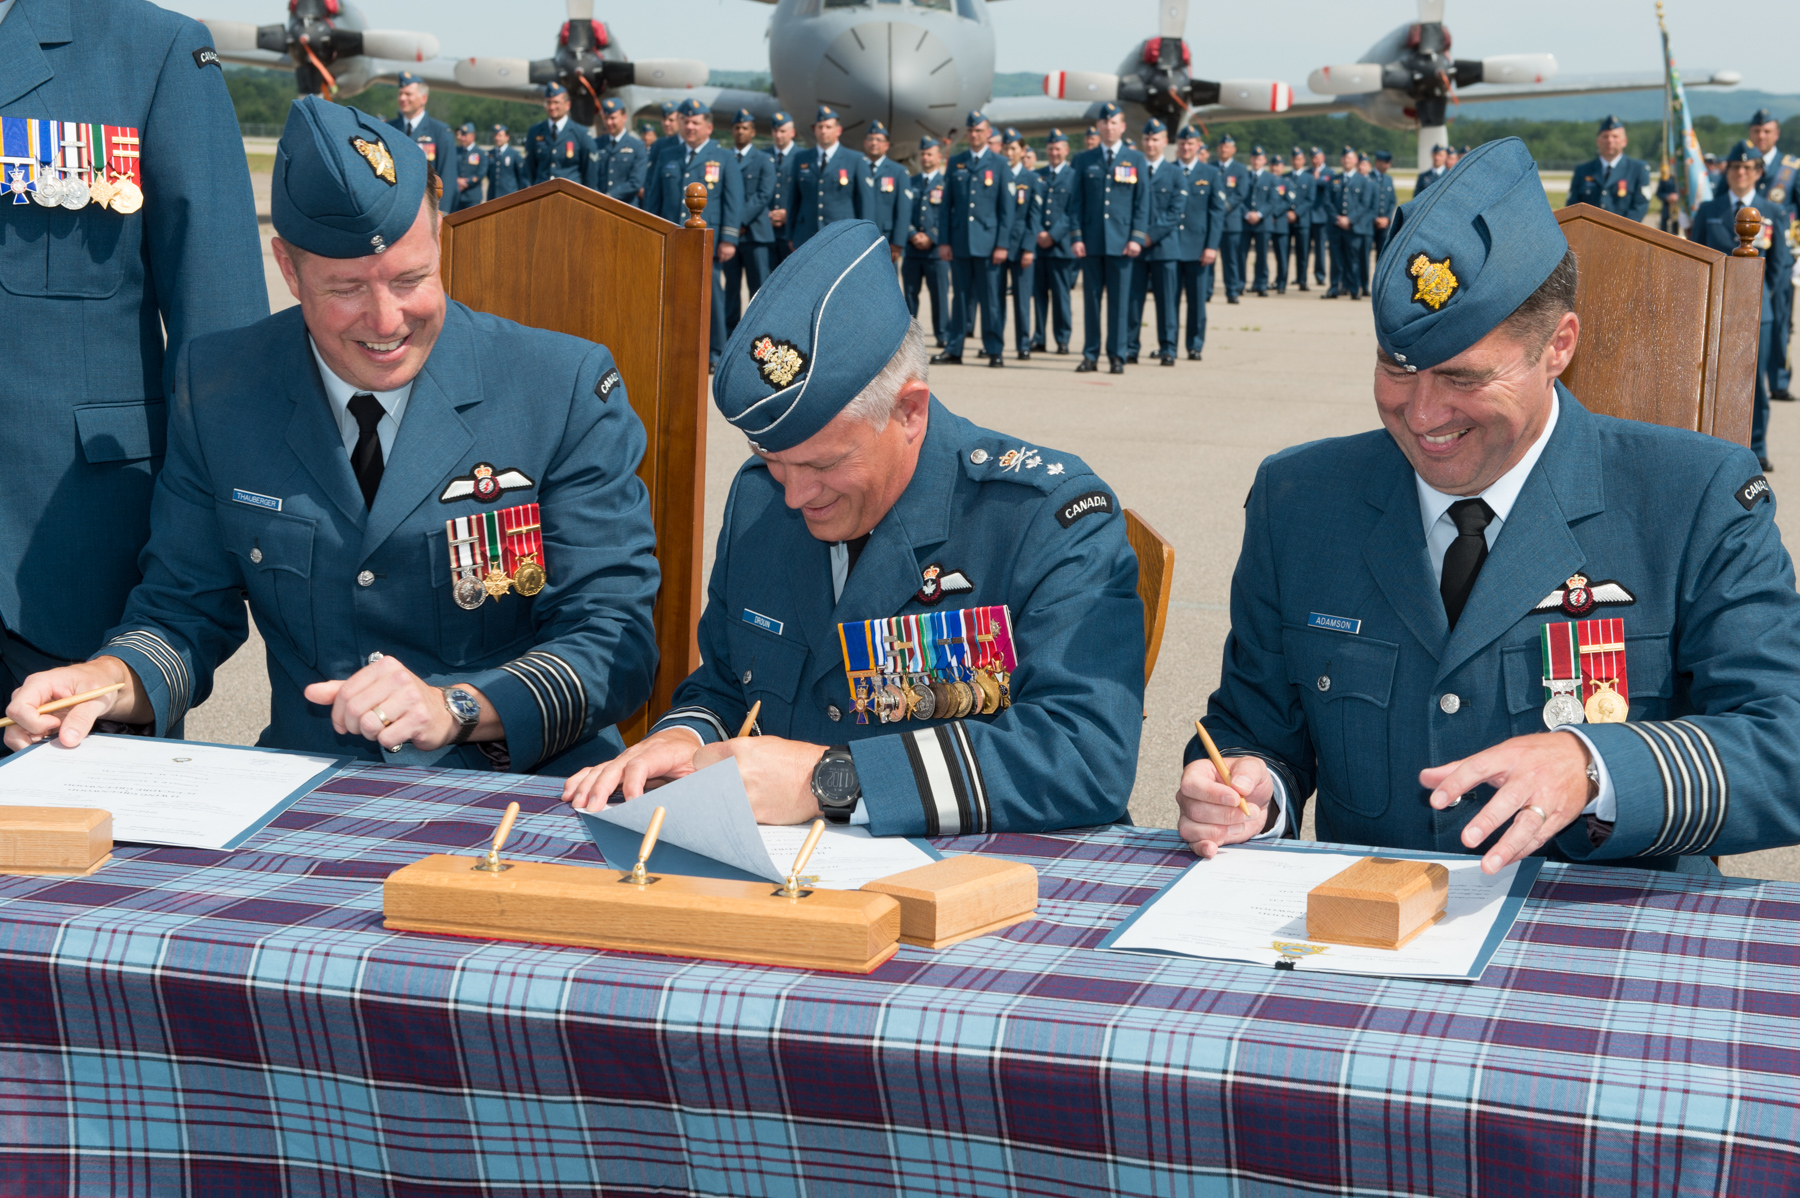 Sitting outdoors at a table covered with a tartan cloth, three men in blue military uniforms hold pens and prepare to sign one document each. Behind them stand ranks of people in blue military uniforms.